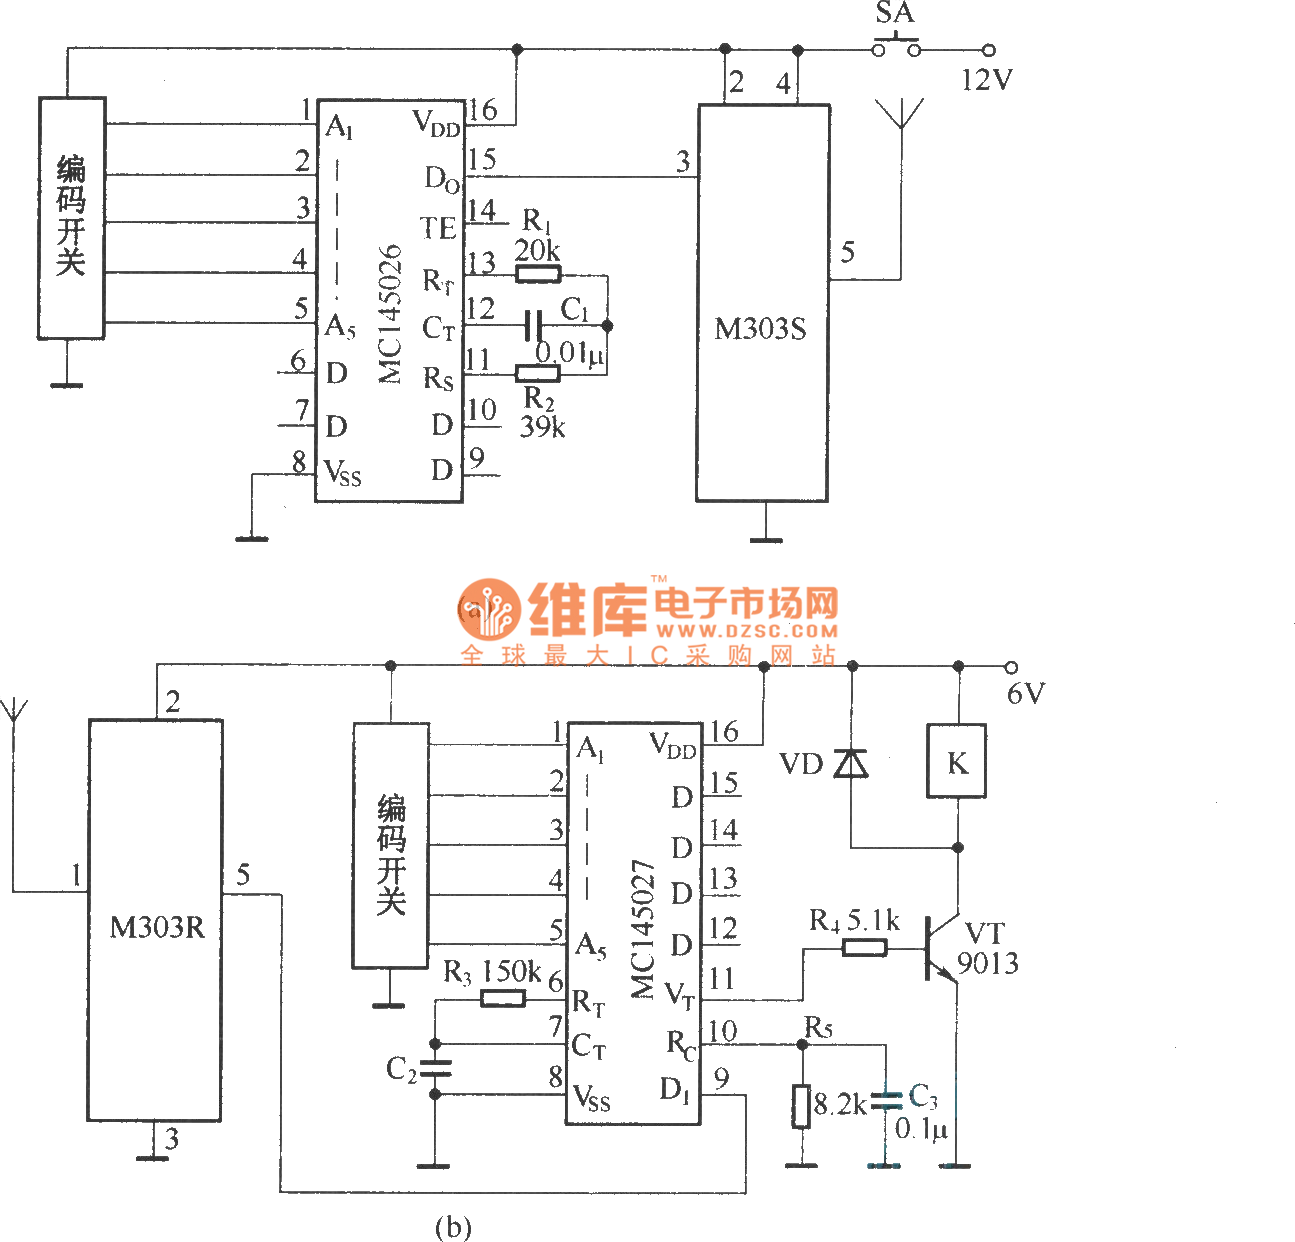 Digital Code Remote Control Switch Circuit Diagram Seekiccom Circuitdiagram Basiccircuit Binarycountercircuithtml